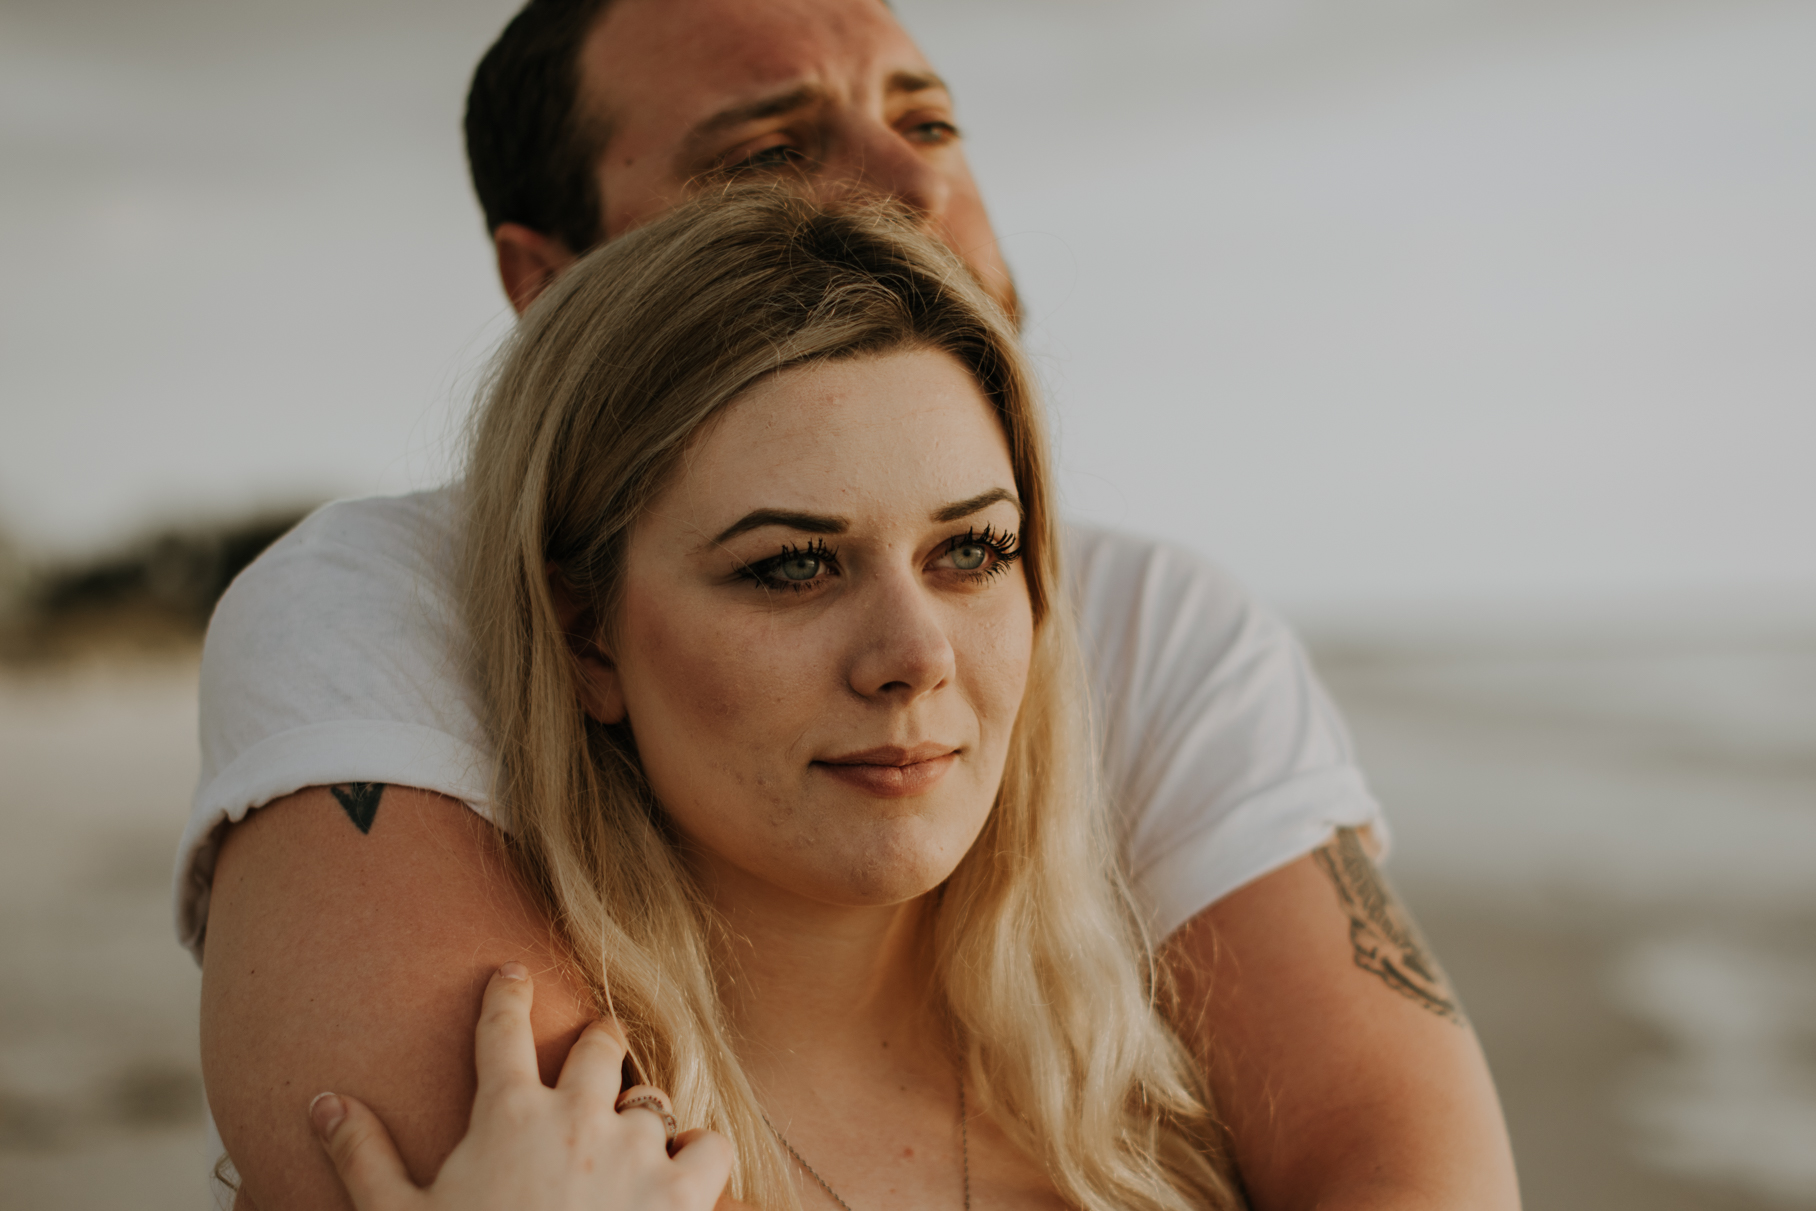 emily + brett | st pete beach engagement | freehearted film co | tampa wedding photography for freespirited lovers